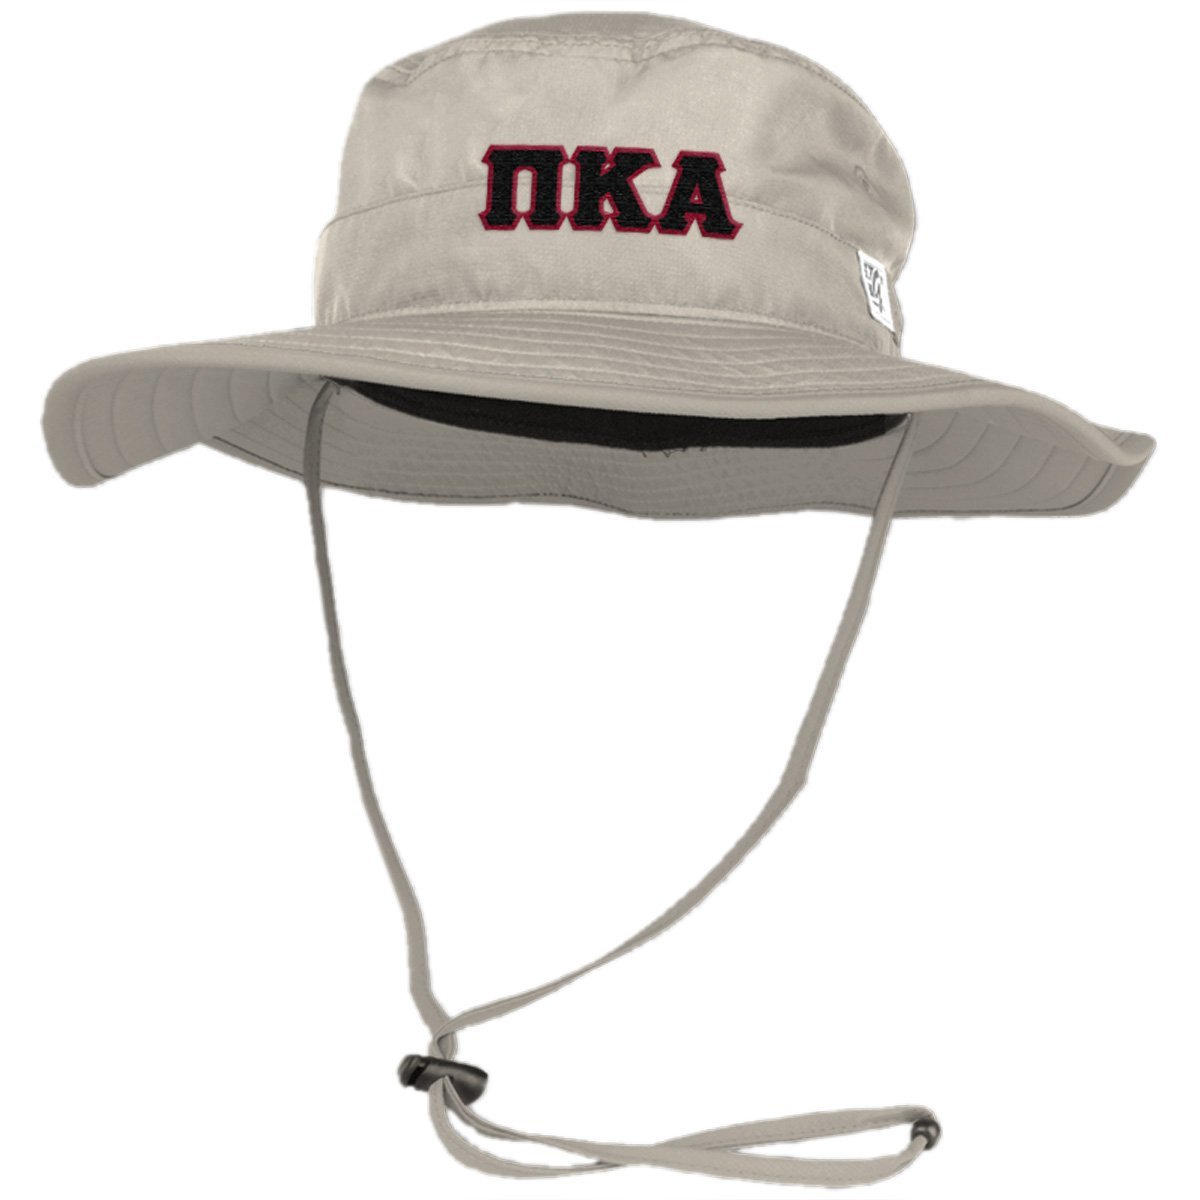 Pike Boonie Hat by The Game 204247